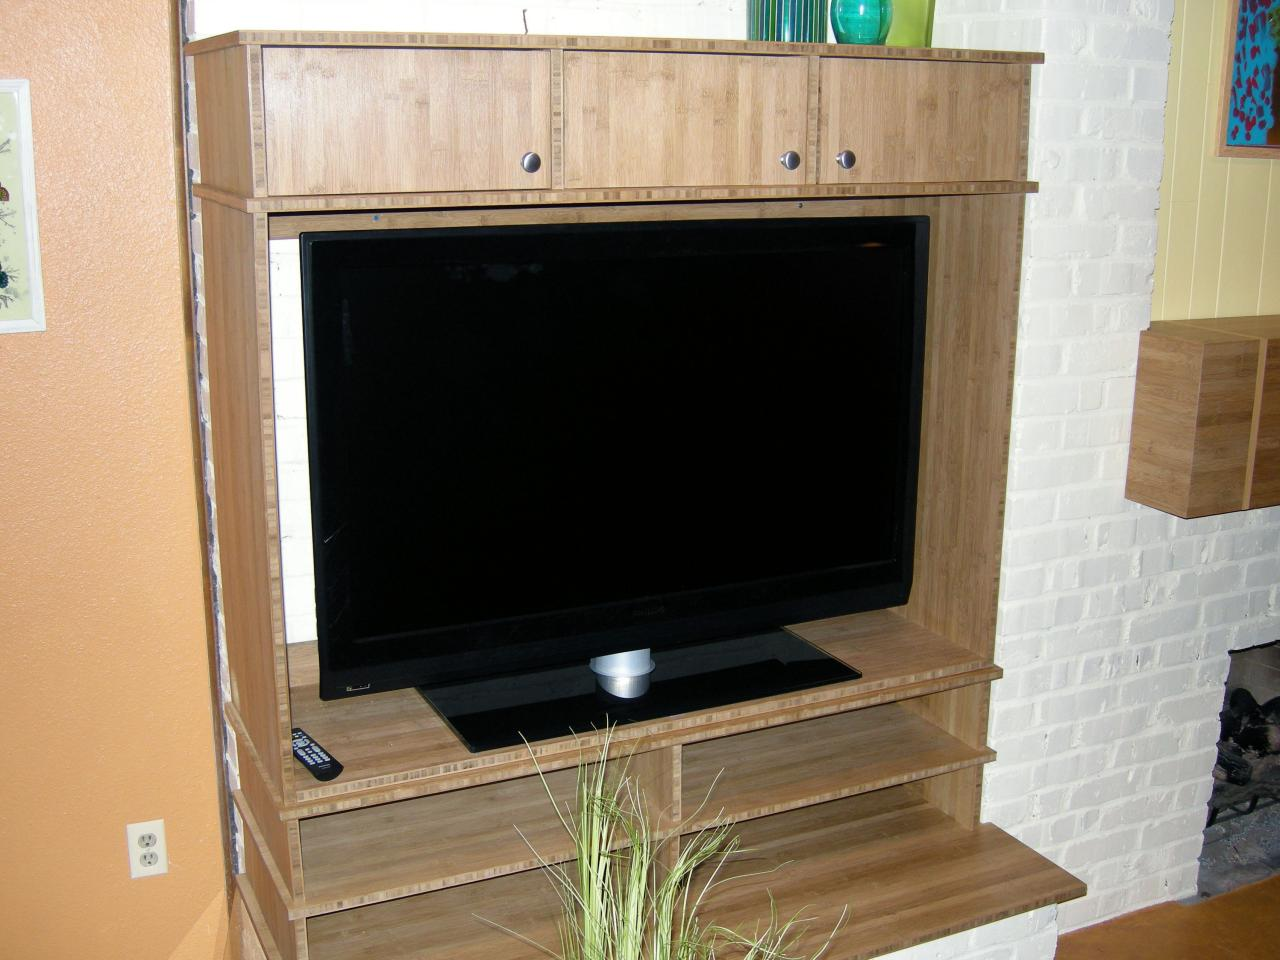 Build an entertainment center in one day hgtv build an entertainment center in one day solutioingenieria Choice Image